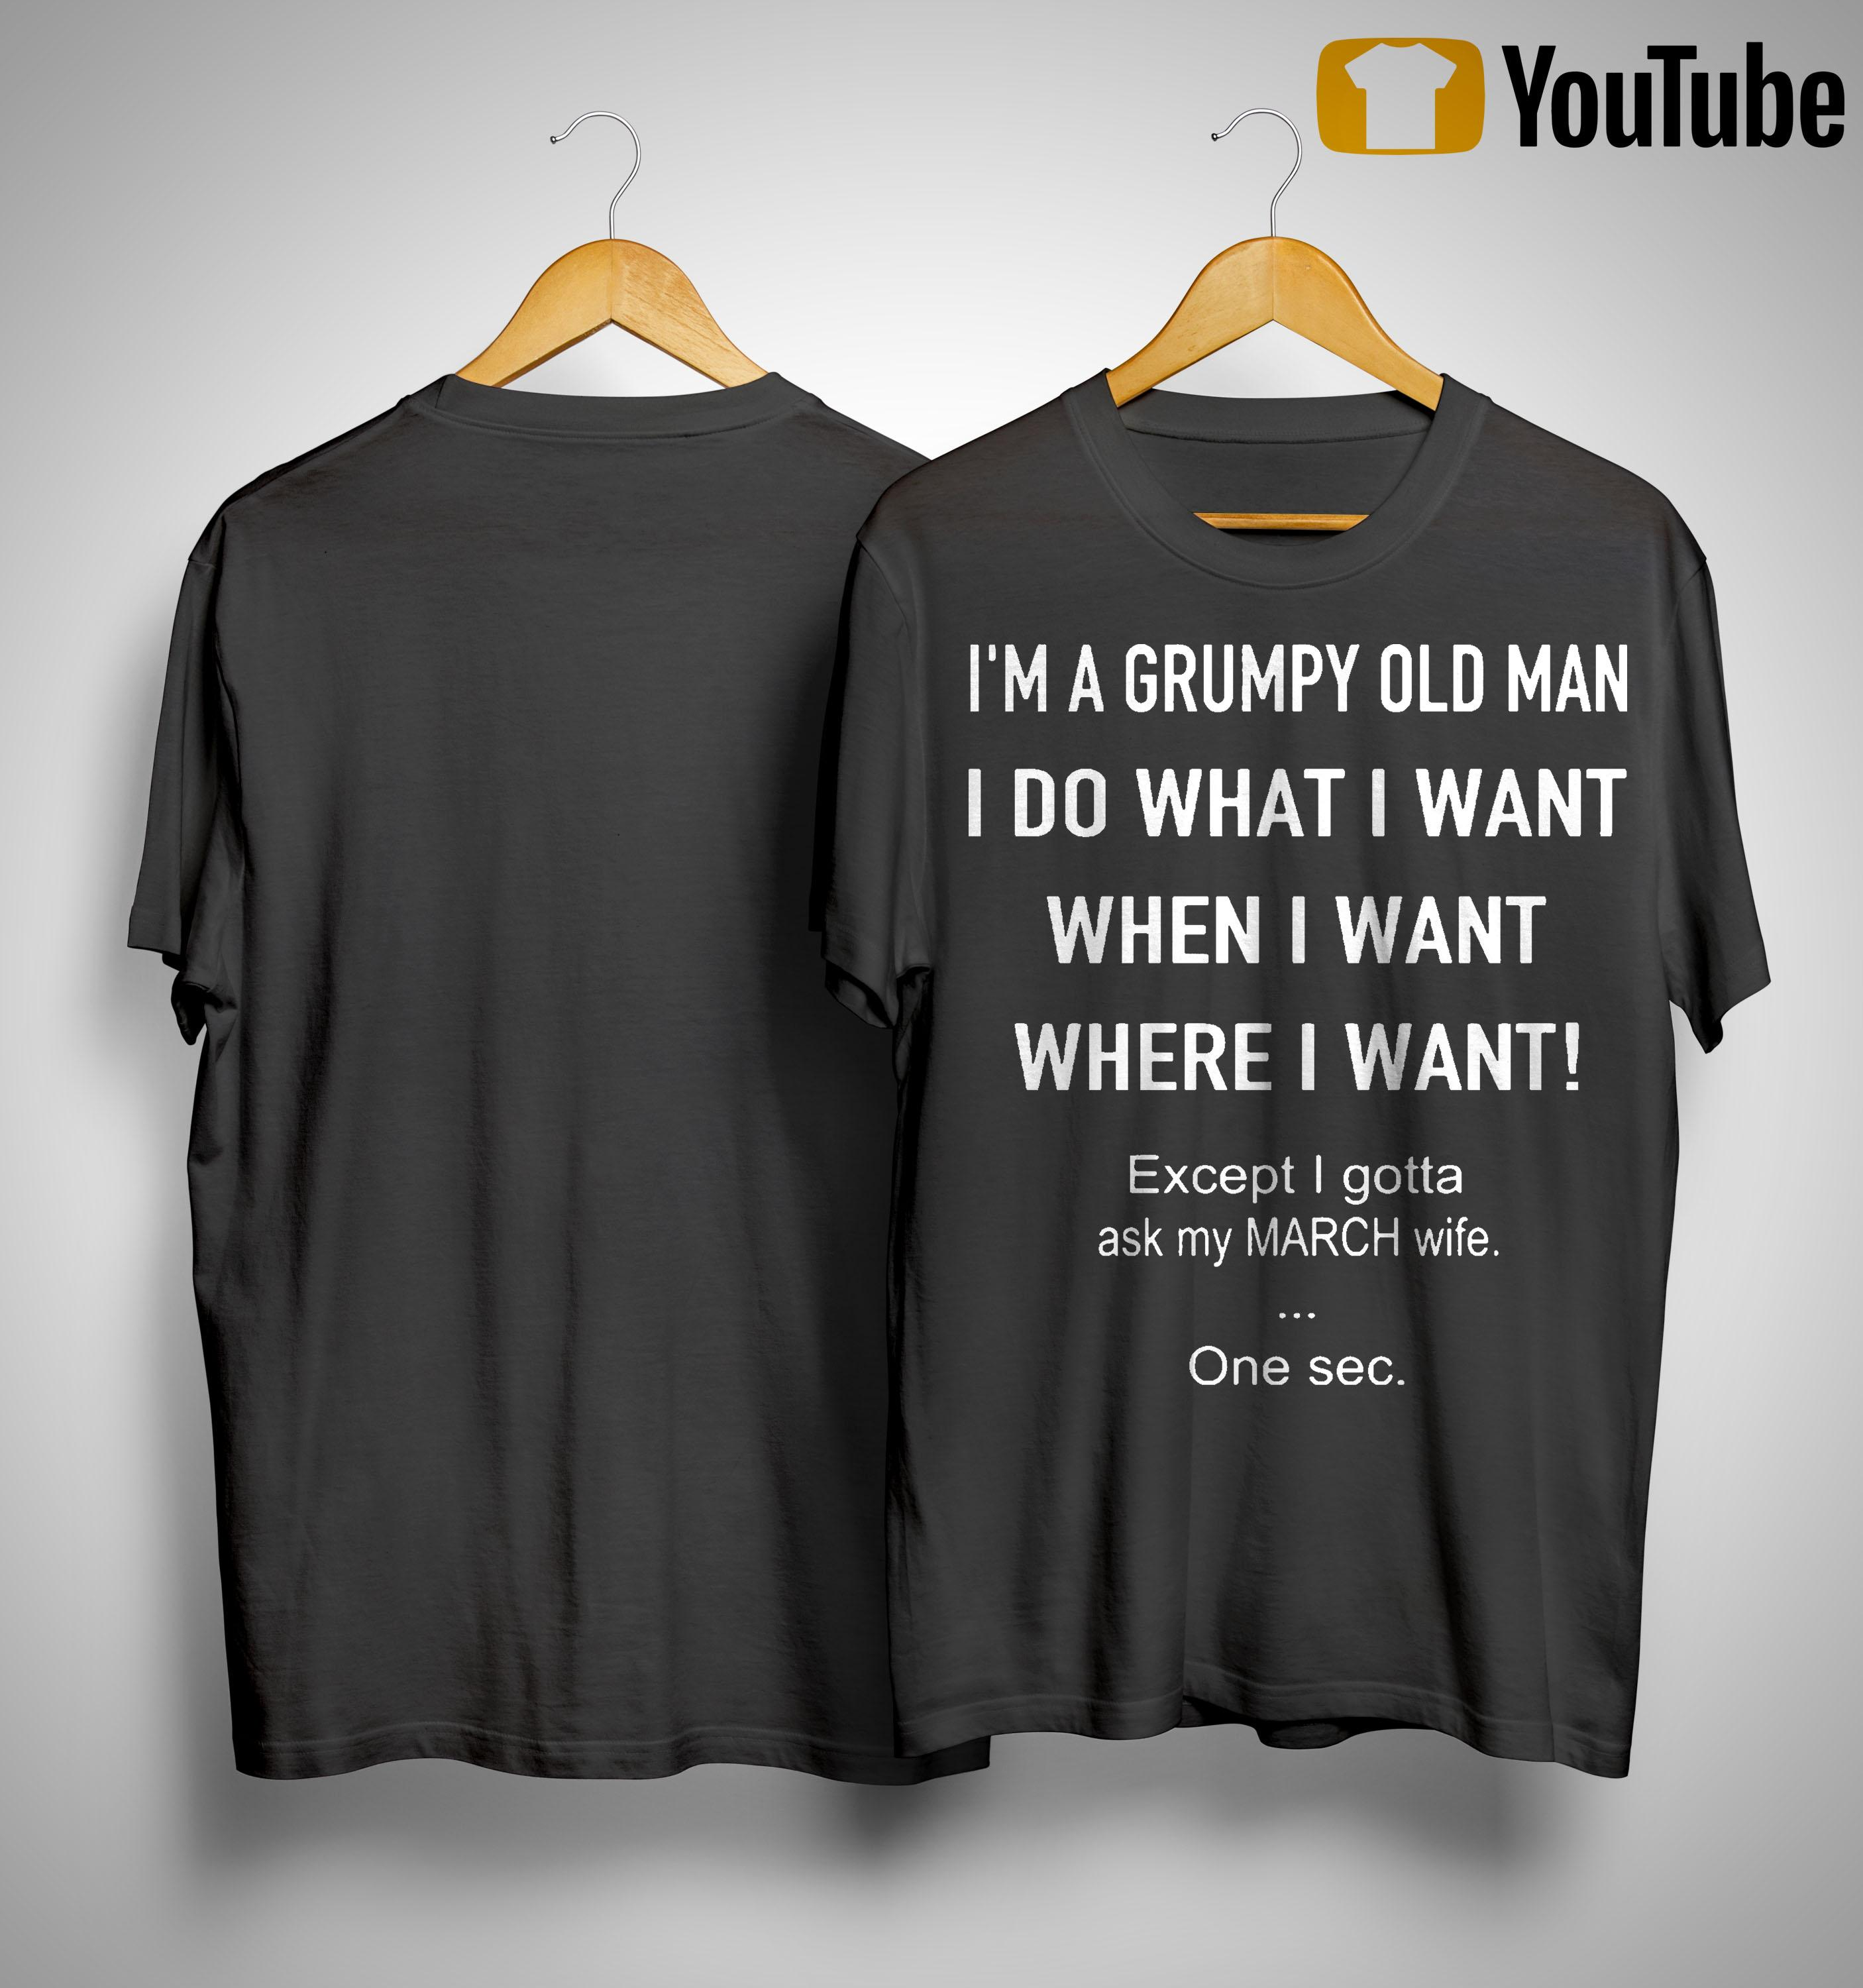 I'm A Grumpy Old Man I Do What I Want When I Want Except Ask My March Wife Shirt